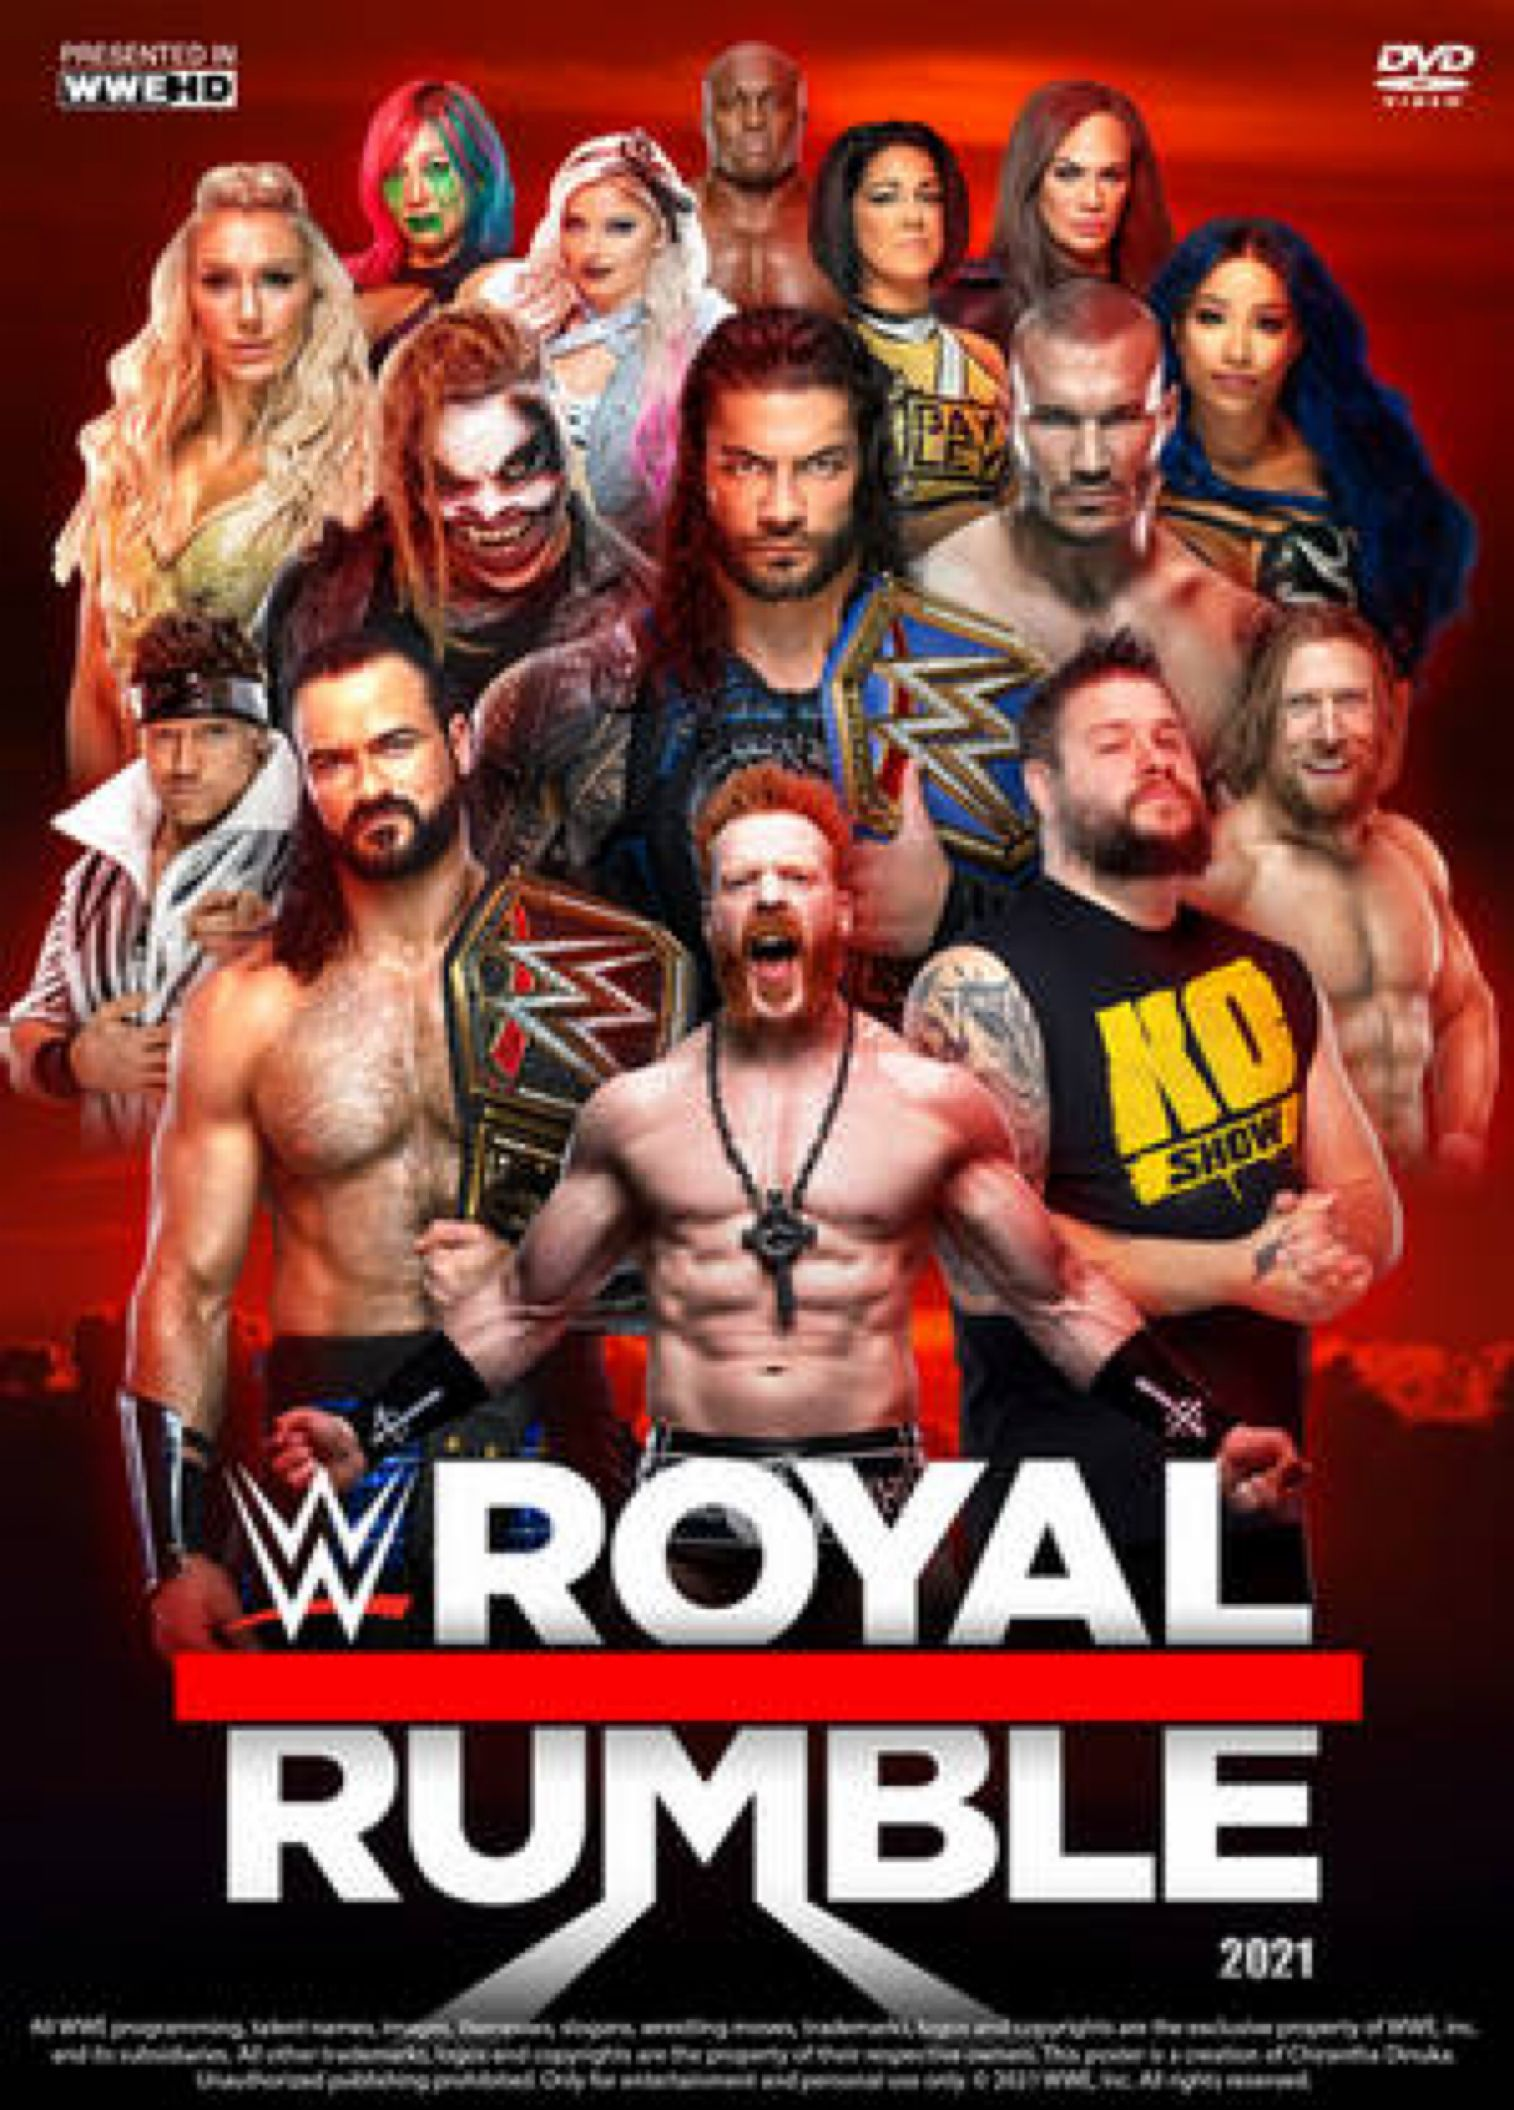 Wwe Royal Rumble 2021 Poster By Chirantha On Deviantart In 2021 Wwe Royal Rumble Royal Rumble Best Wwe Wrestlers